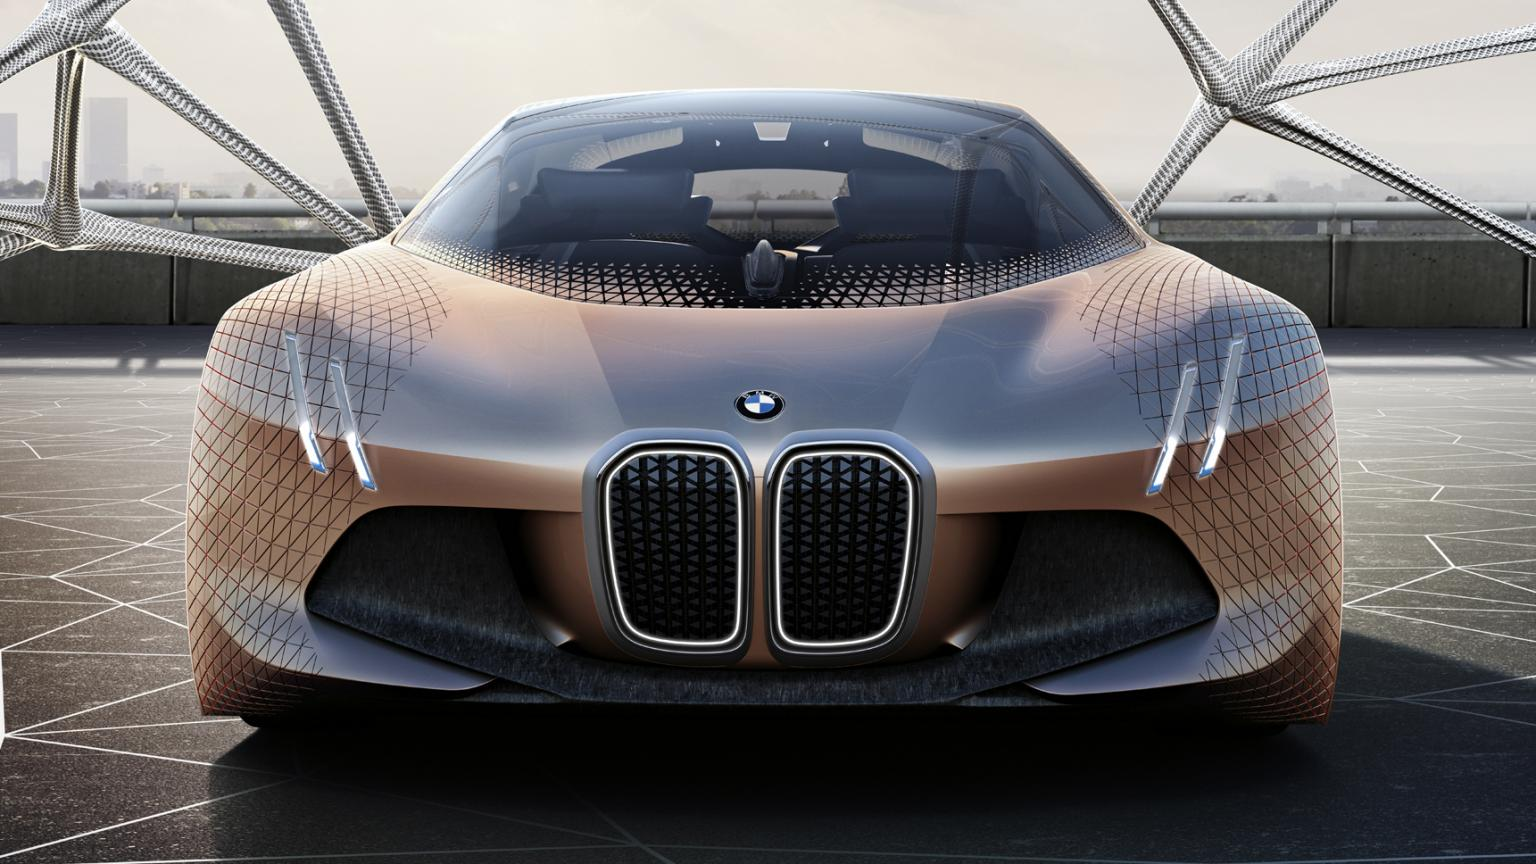 BMW's Vision Next 100 Has Been Unveiled On 100th Anniversary